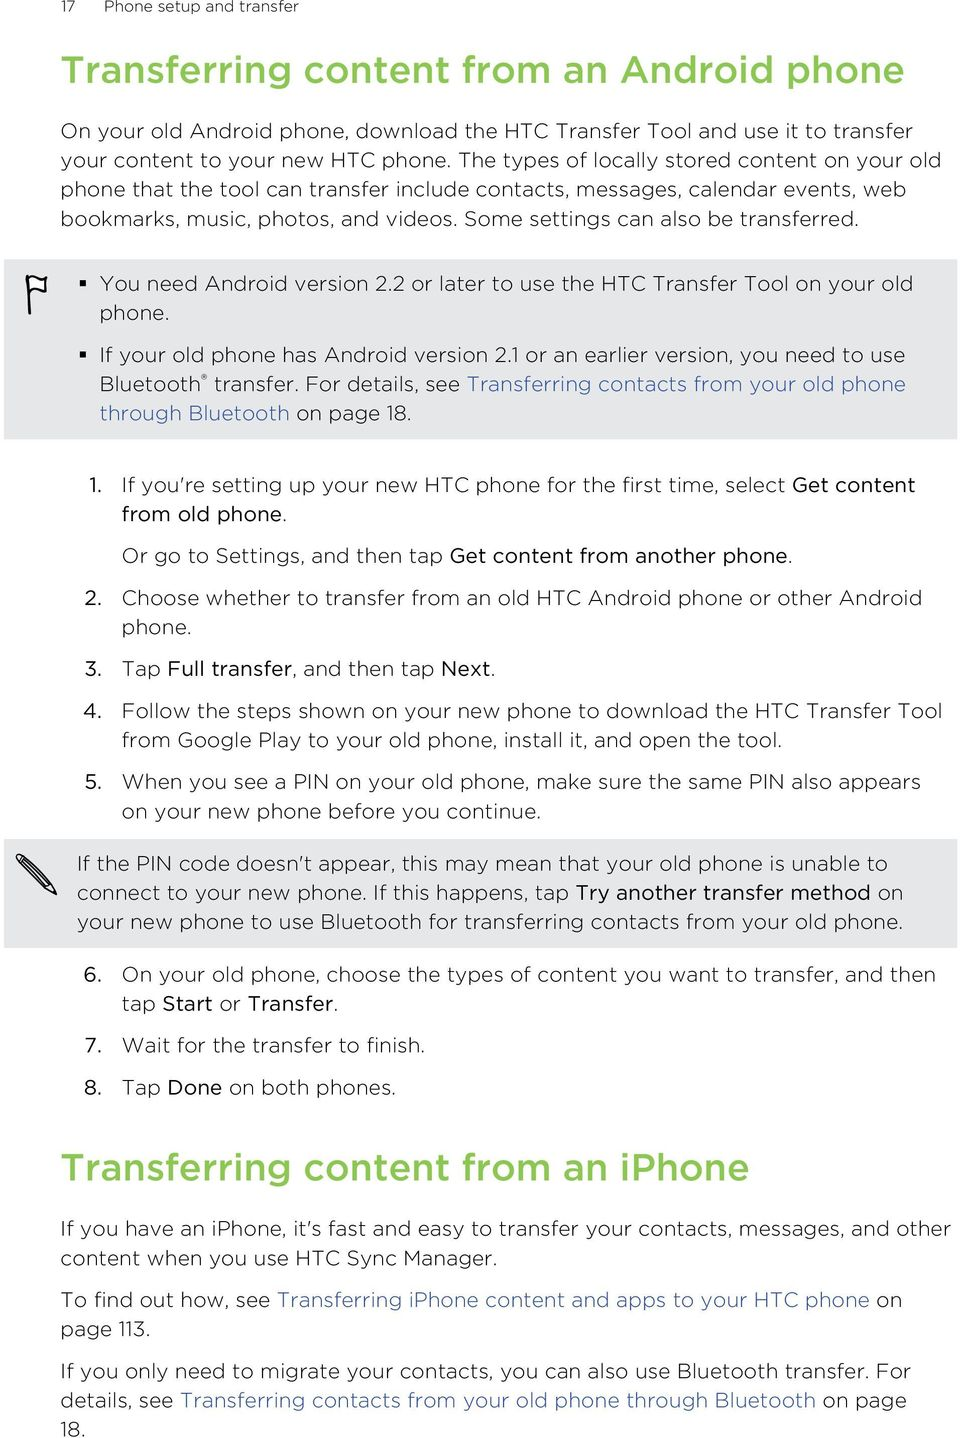 Some settings can also be transferred. You need Android version 2.2 or later to use the HTC Transfer Tool on your old phone. If your old phone has Android version 2.